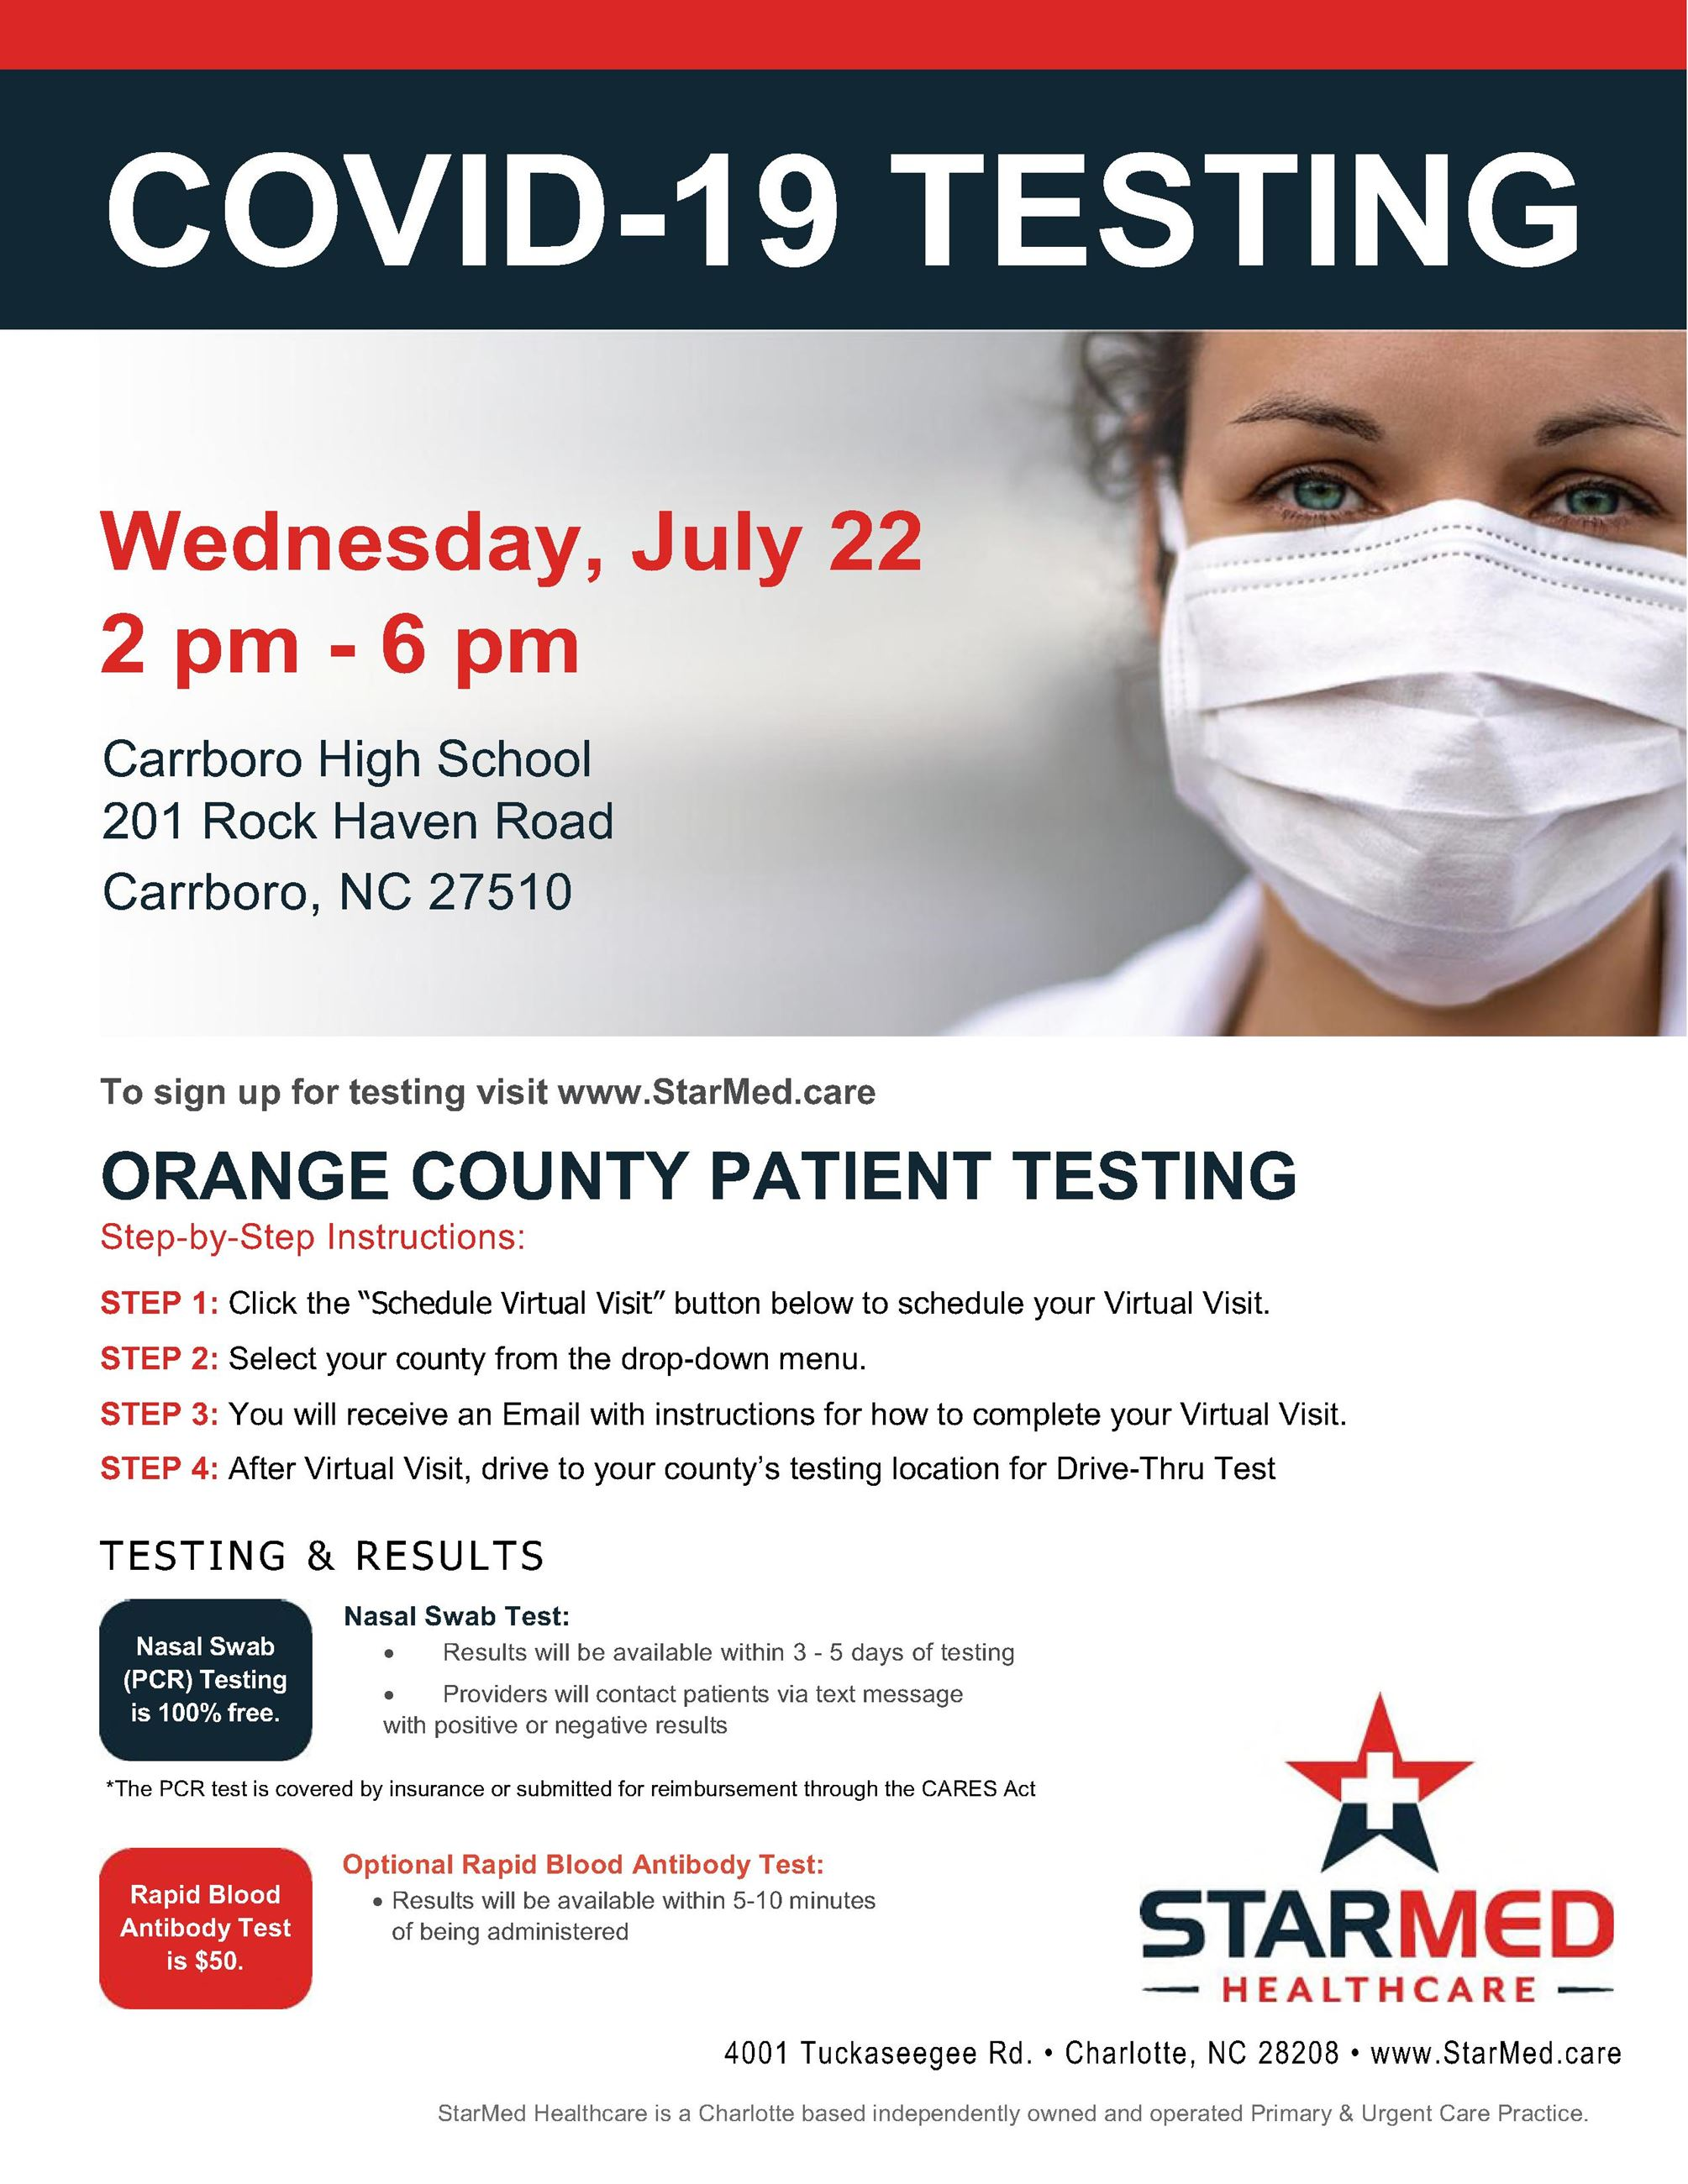 COVID-19 Testing in Orange County/Carrboro (English)